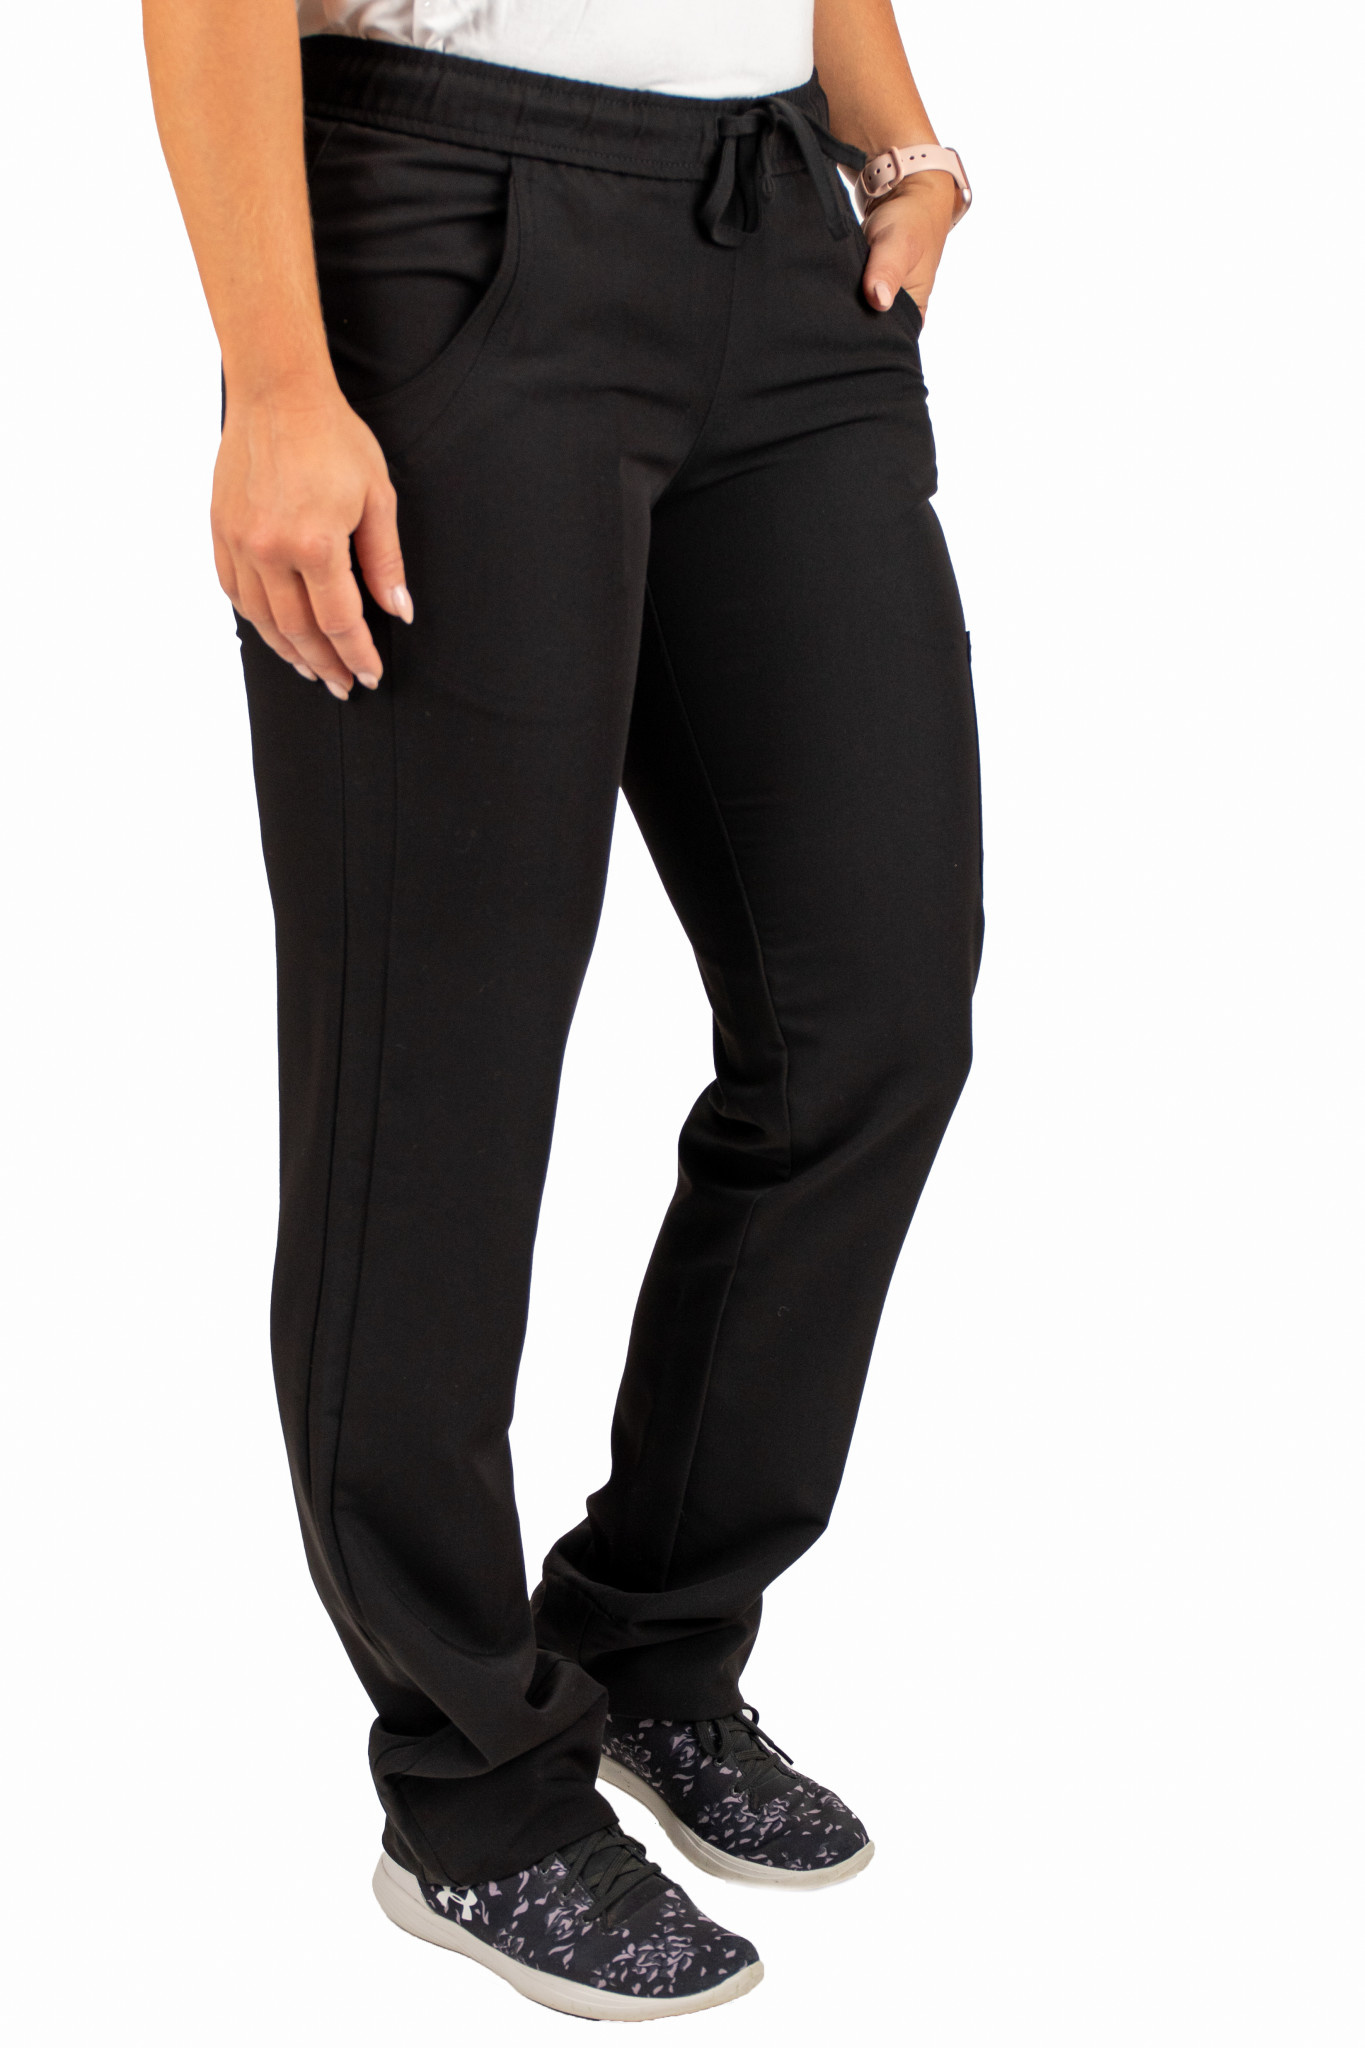 Black Women's Drawstring Waistband Fitted Pants 960